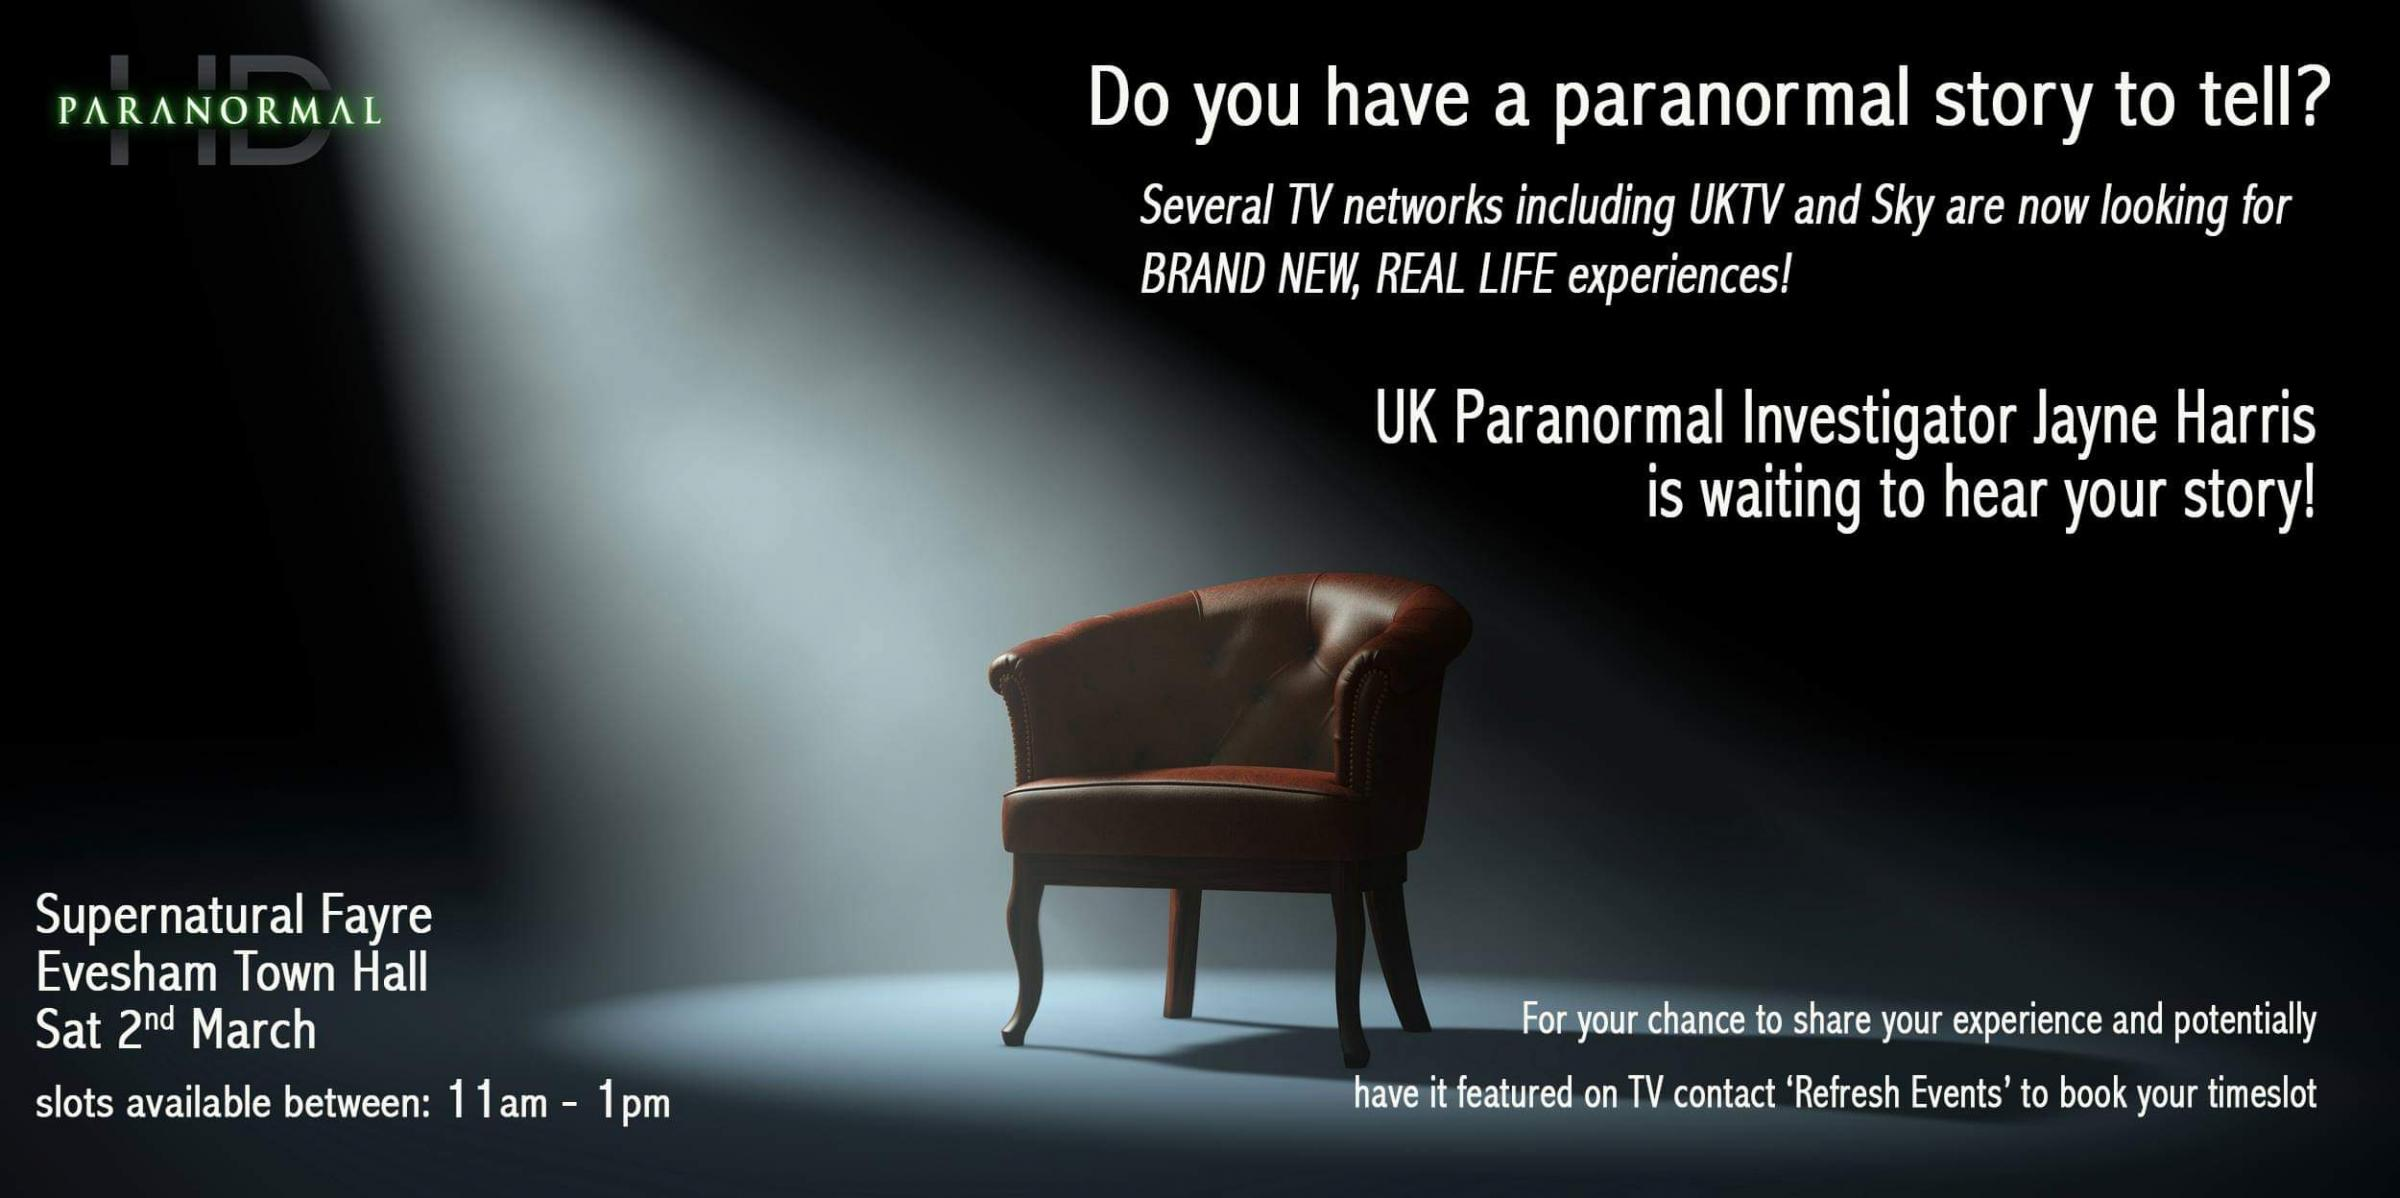 Share your Story! - New Paranormal TV shows want to hear them!